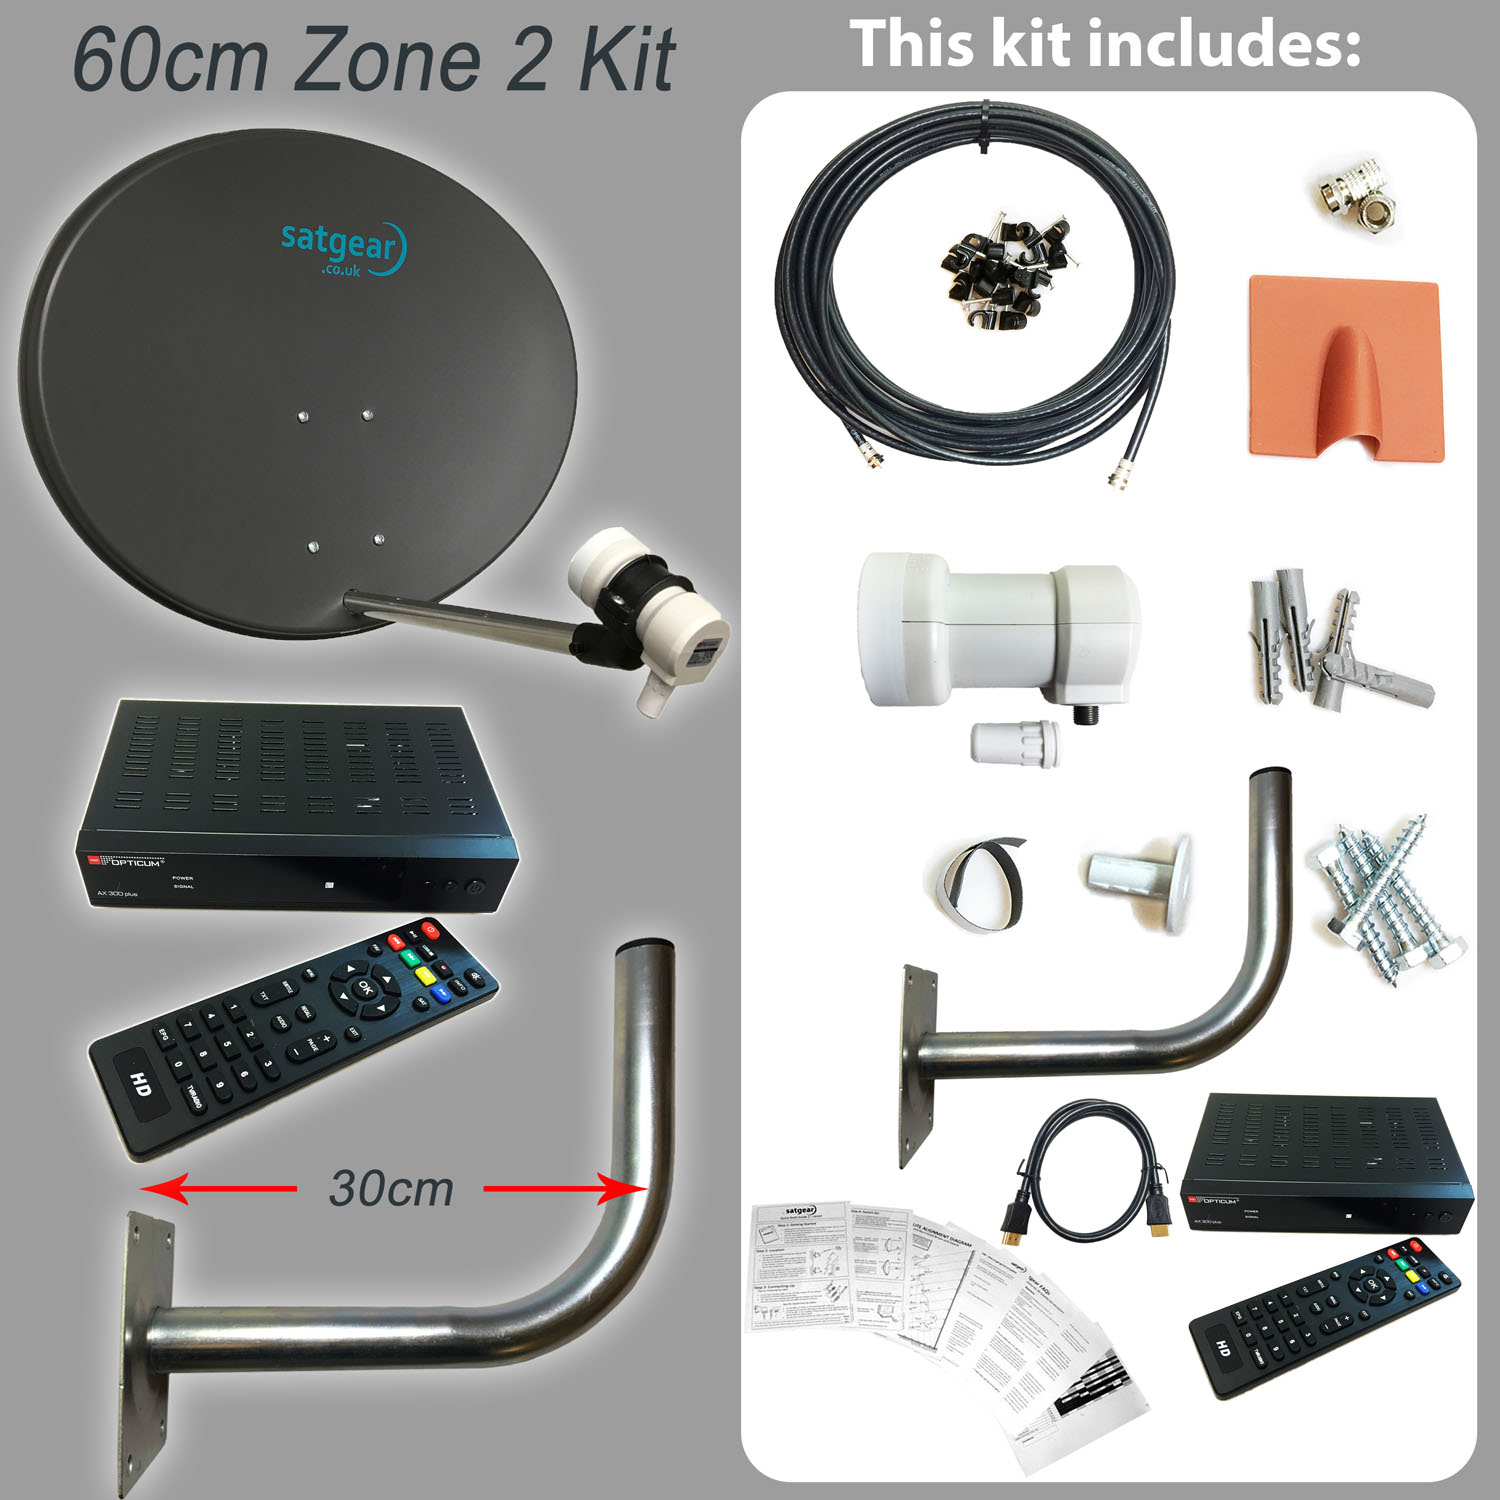 Satgear 60cm Zone 2 Solid Satellite Dish Kit inc 10m of Single Cable and Universal Single LNB